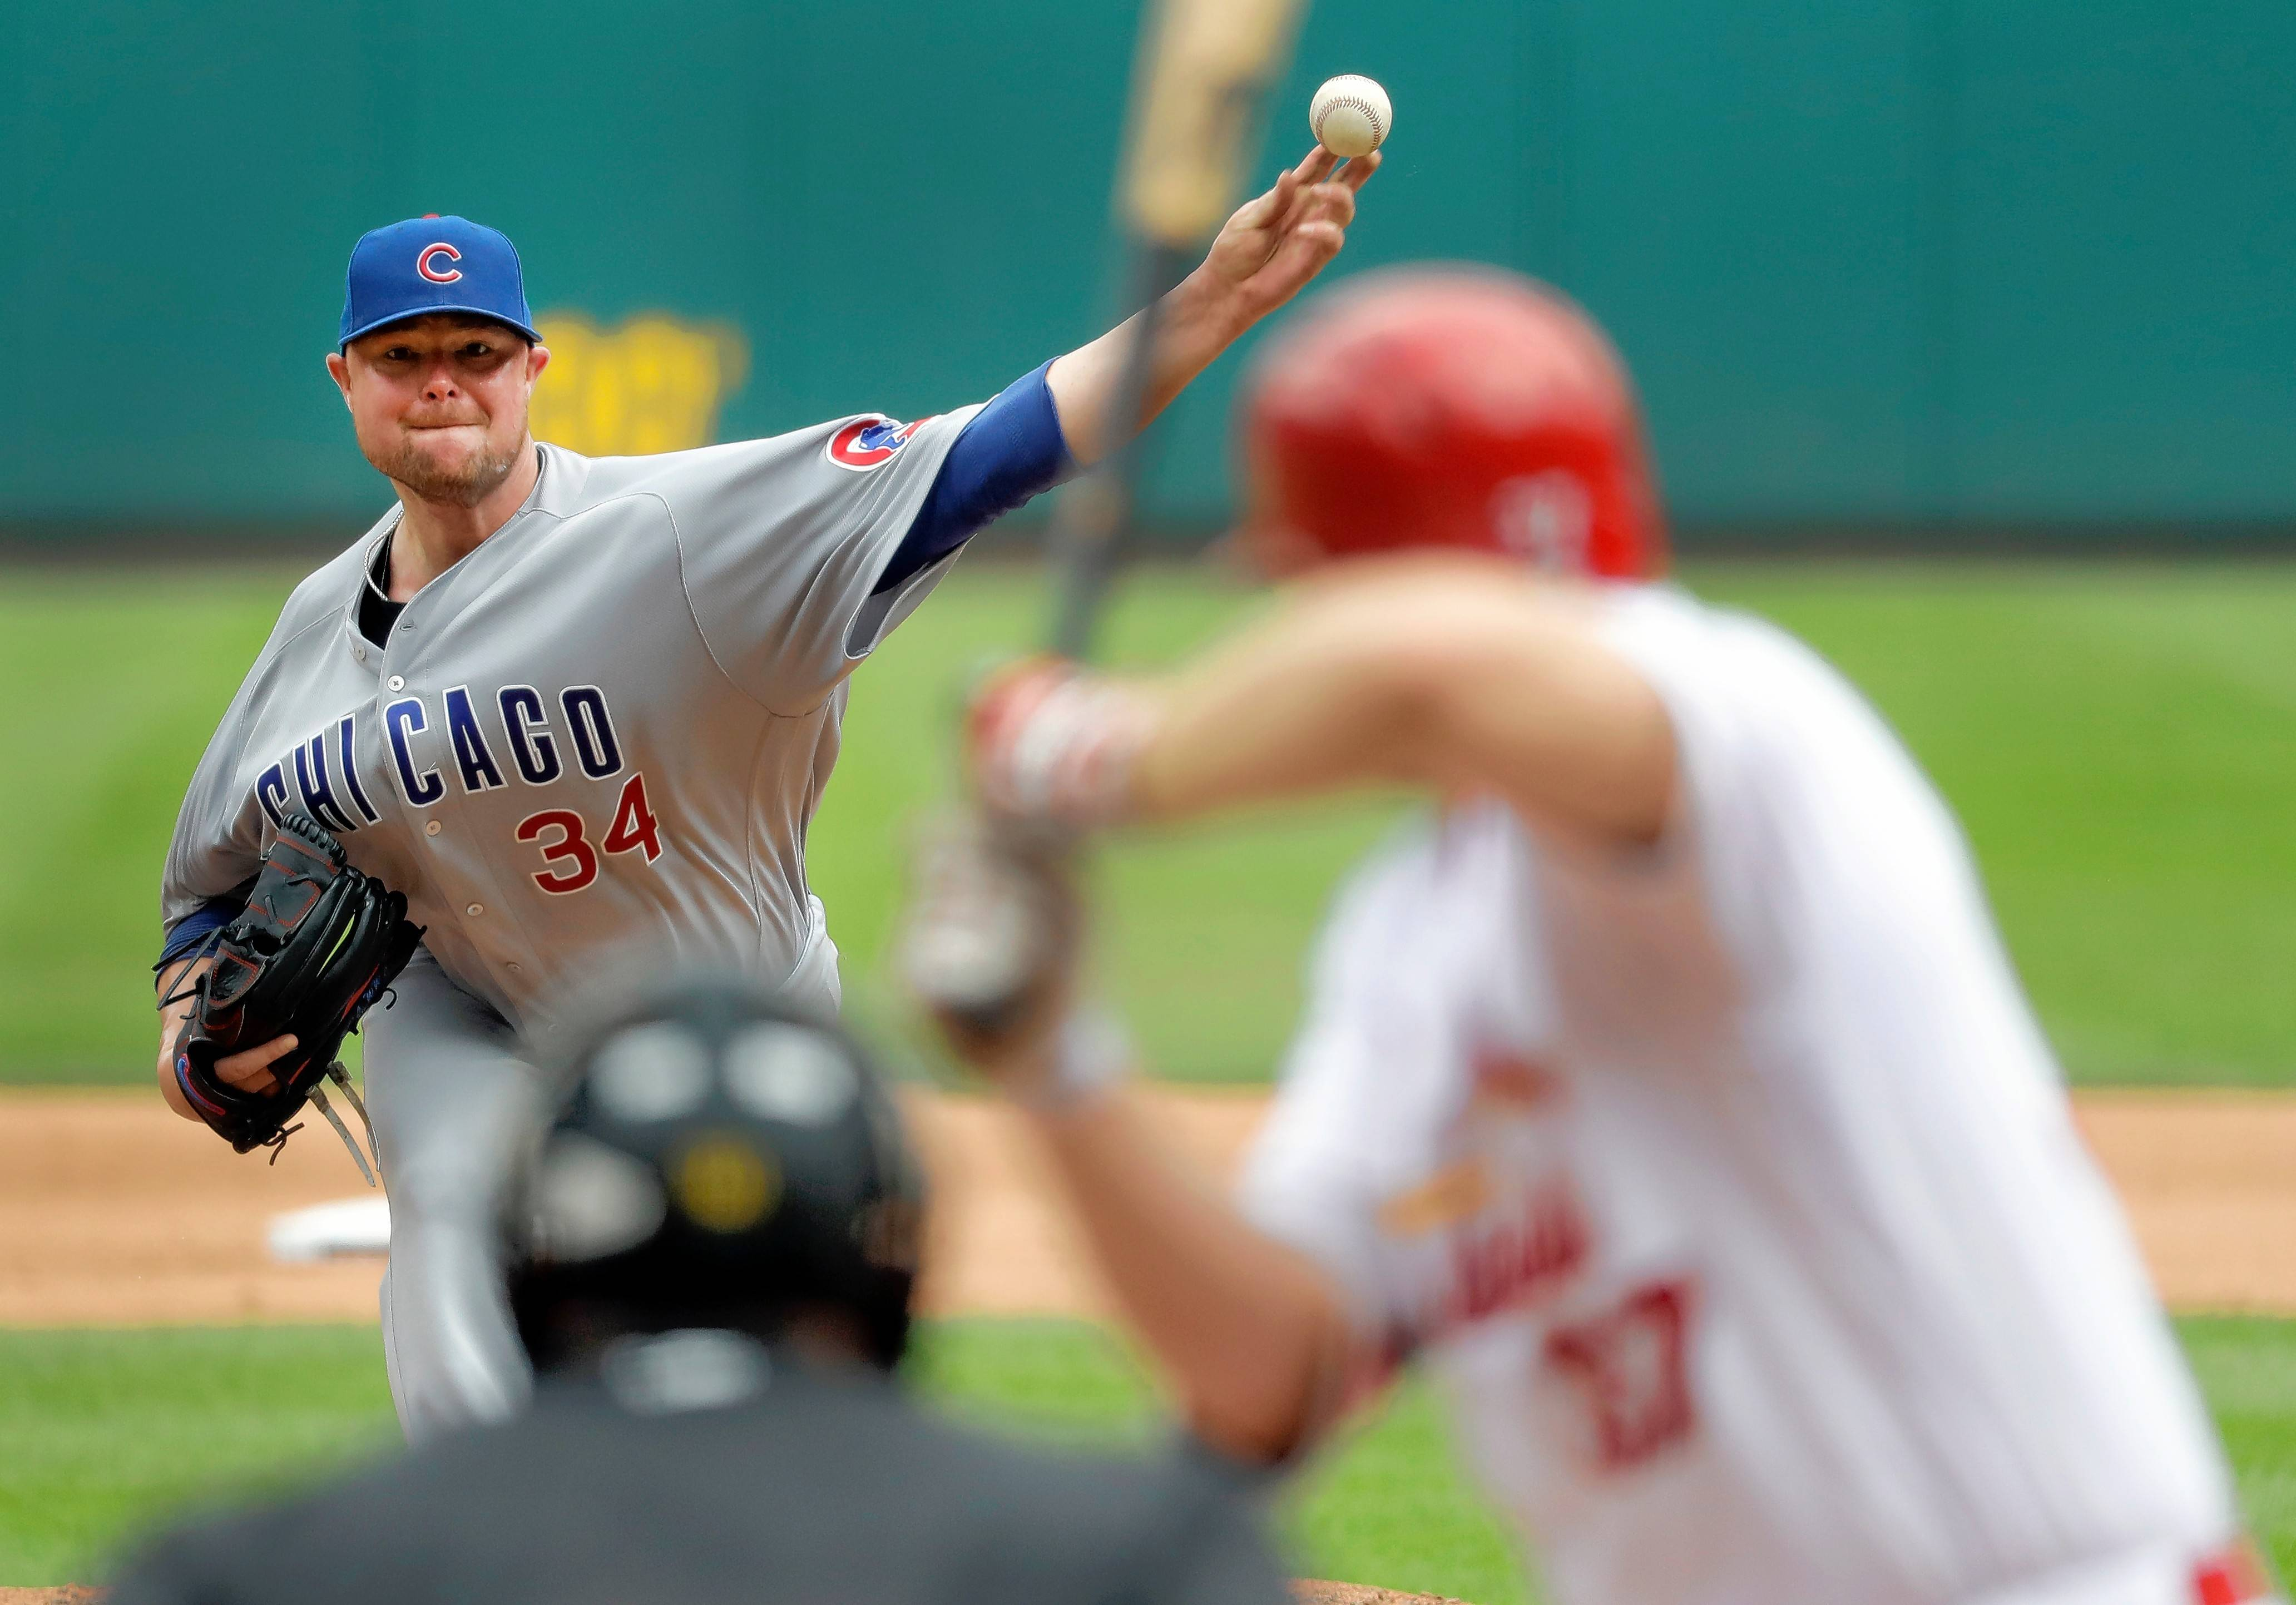 The World Champion Chicago Cubs will open the 2017 season against the St. Louis Cardinals at Busch Stadium in a prime-time TV game on Sunday, April 2.